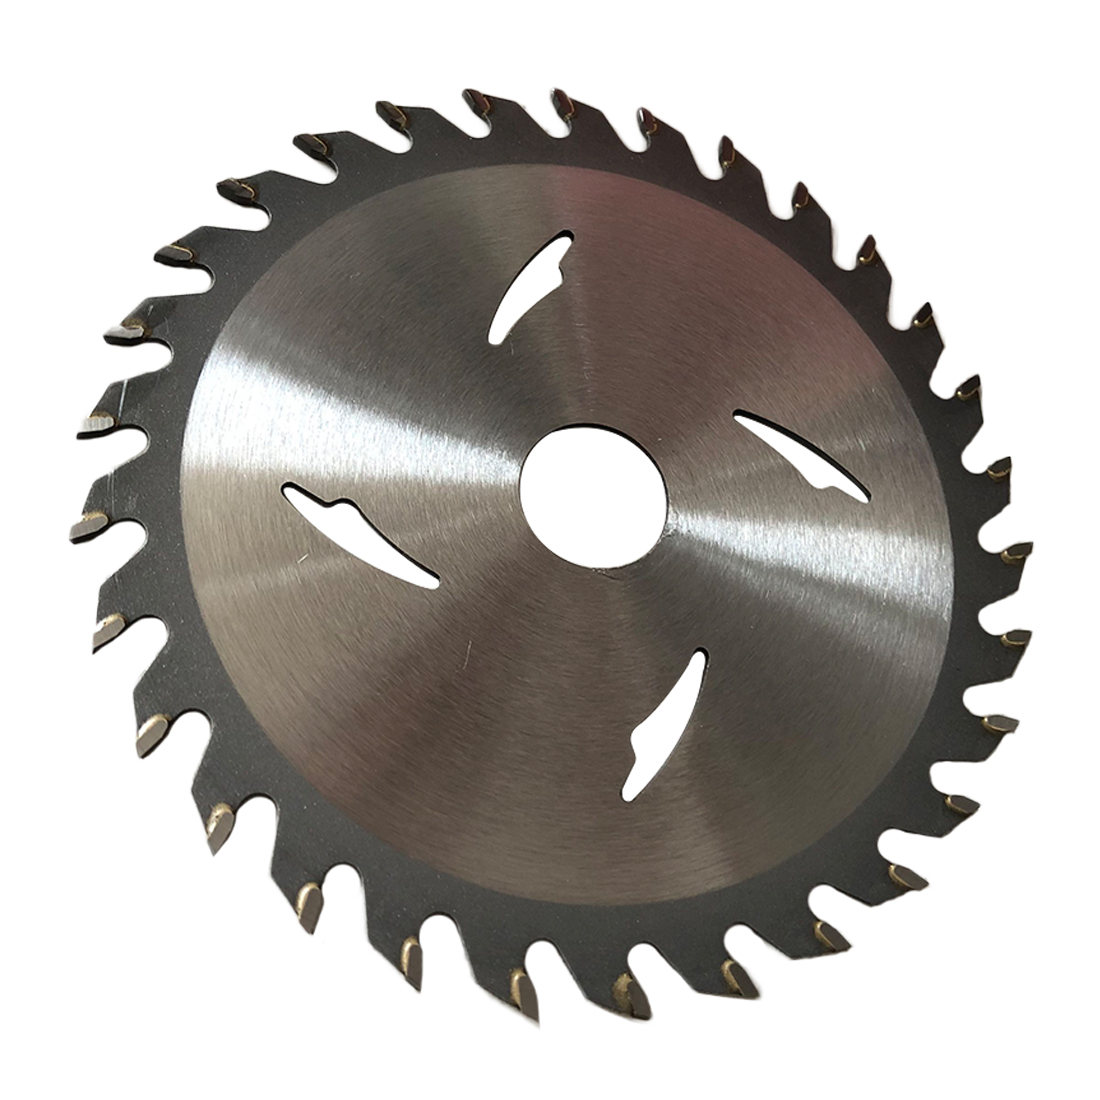 Sharp Durable Wood Cutting Disc 1PC 125/110mm*20mm 24T/30T/40T TCT Saw Blade Carbide Tipped Saw Blade Cutting Piece Circular Saw